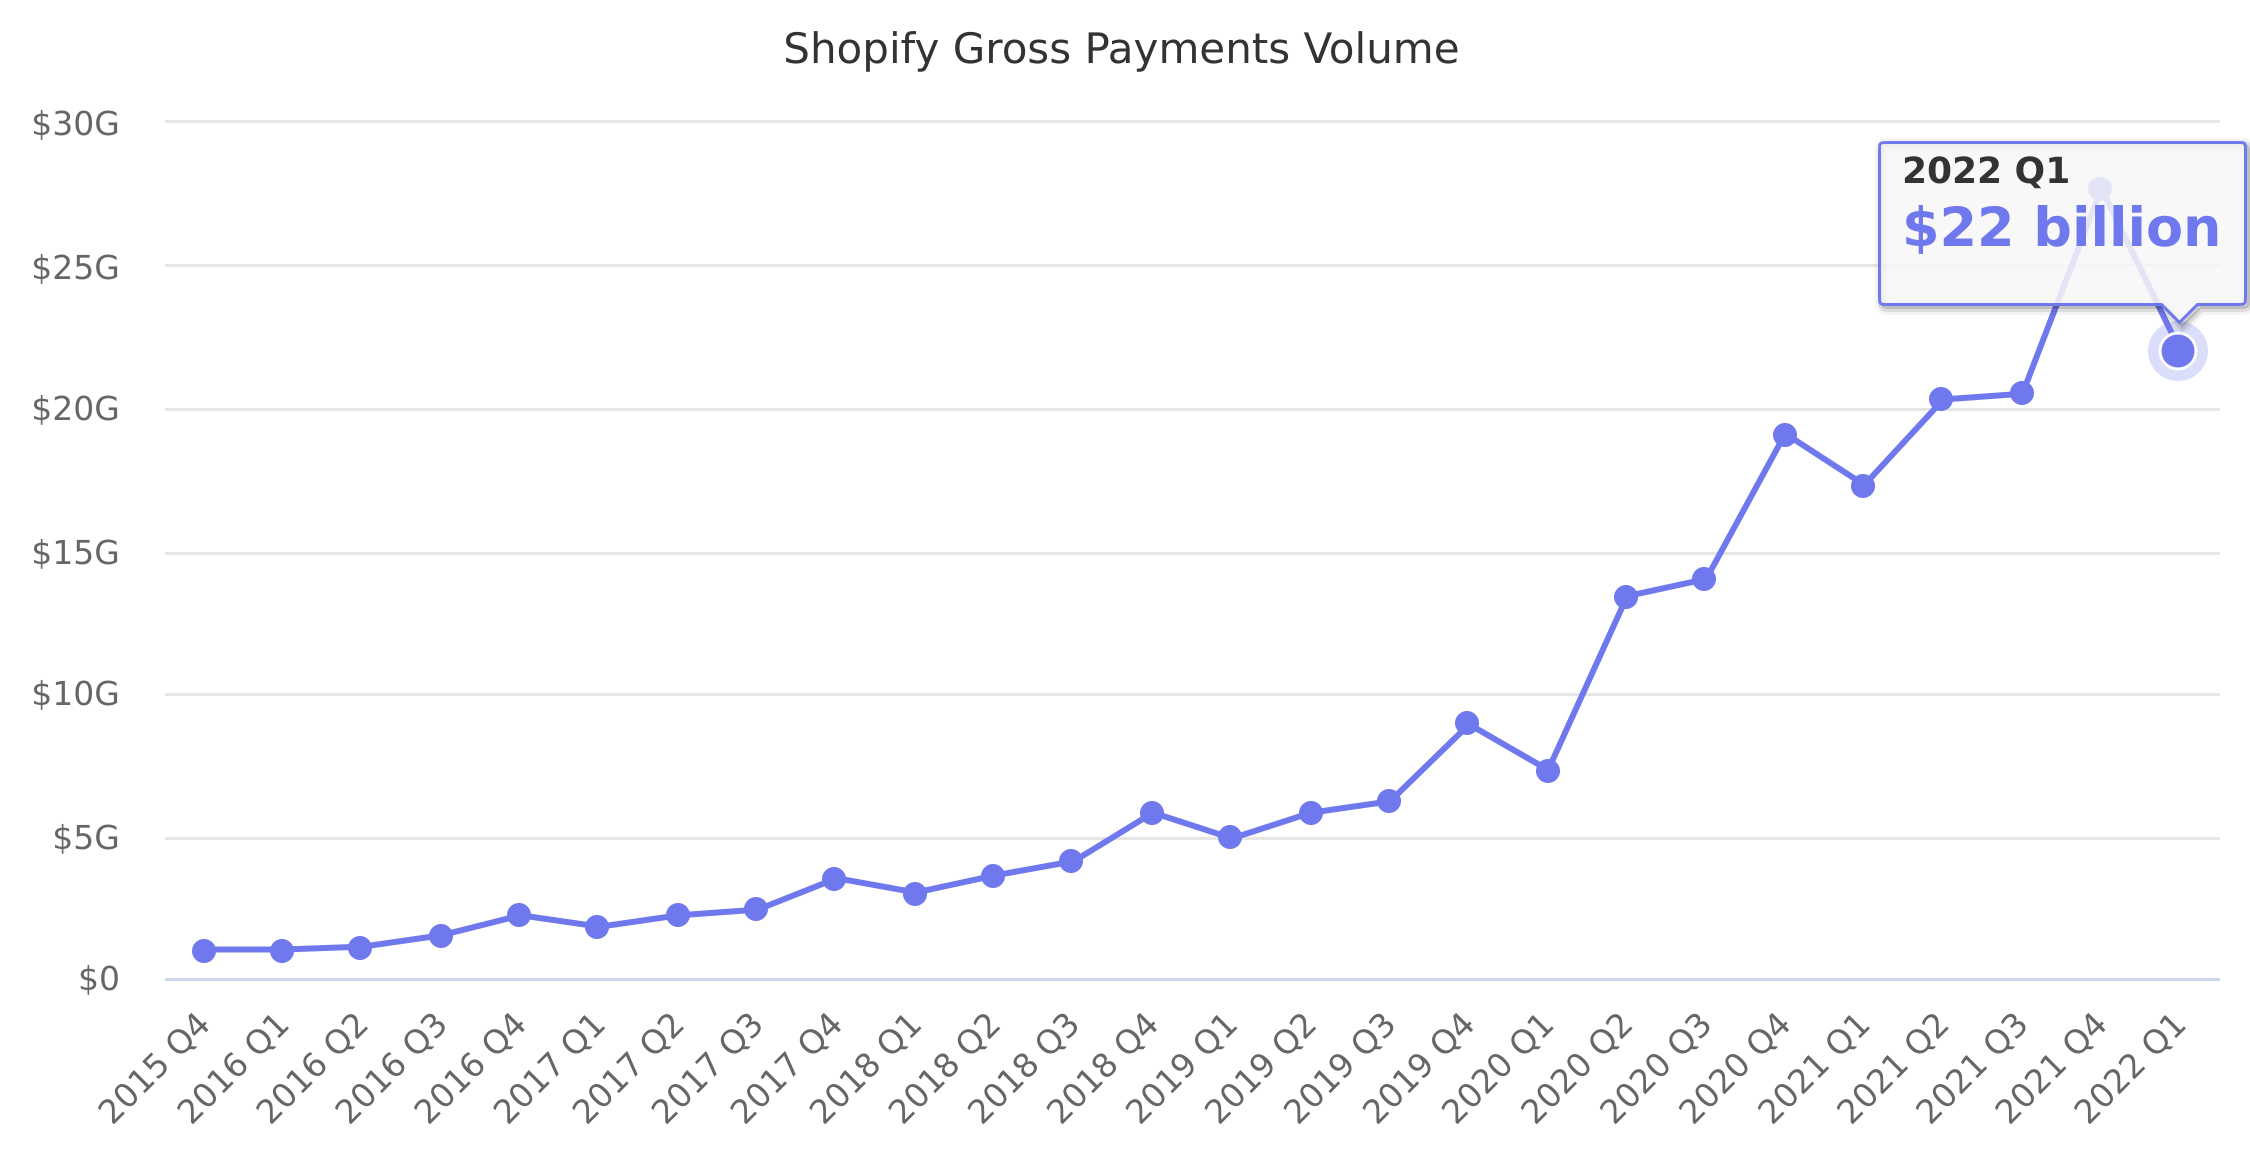 Shopify Gross Payments Volume 2015-2018